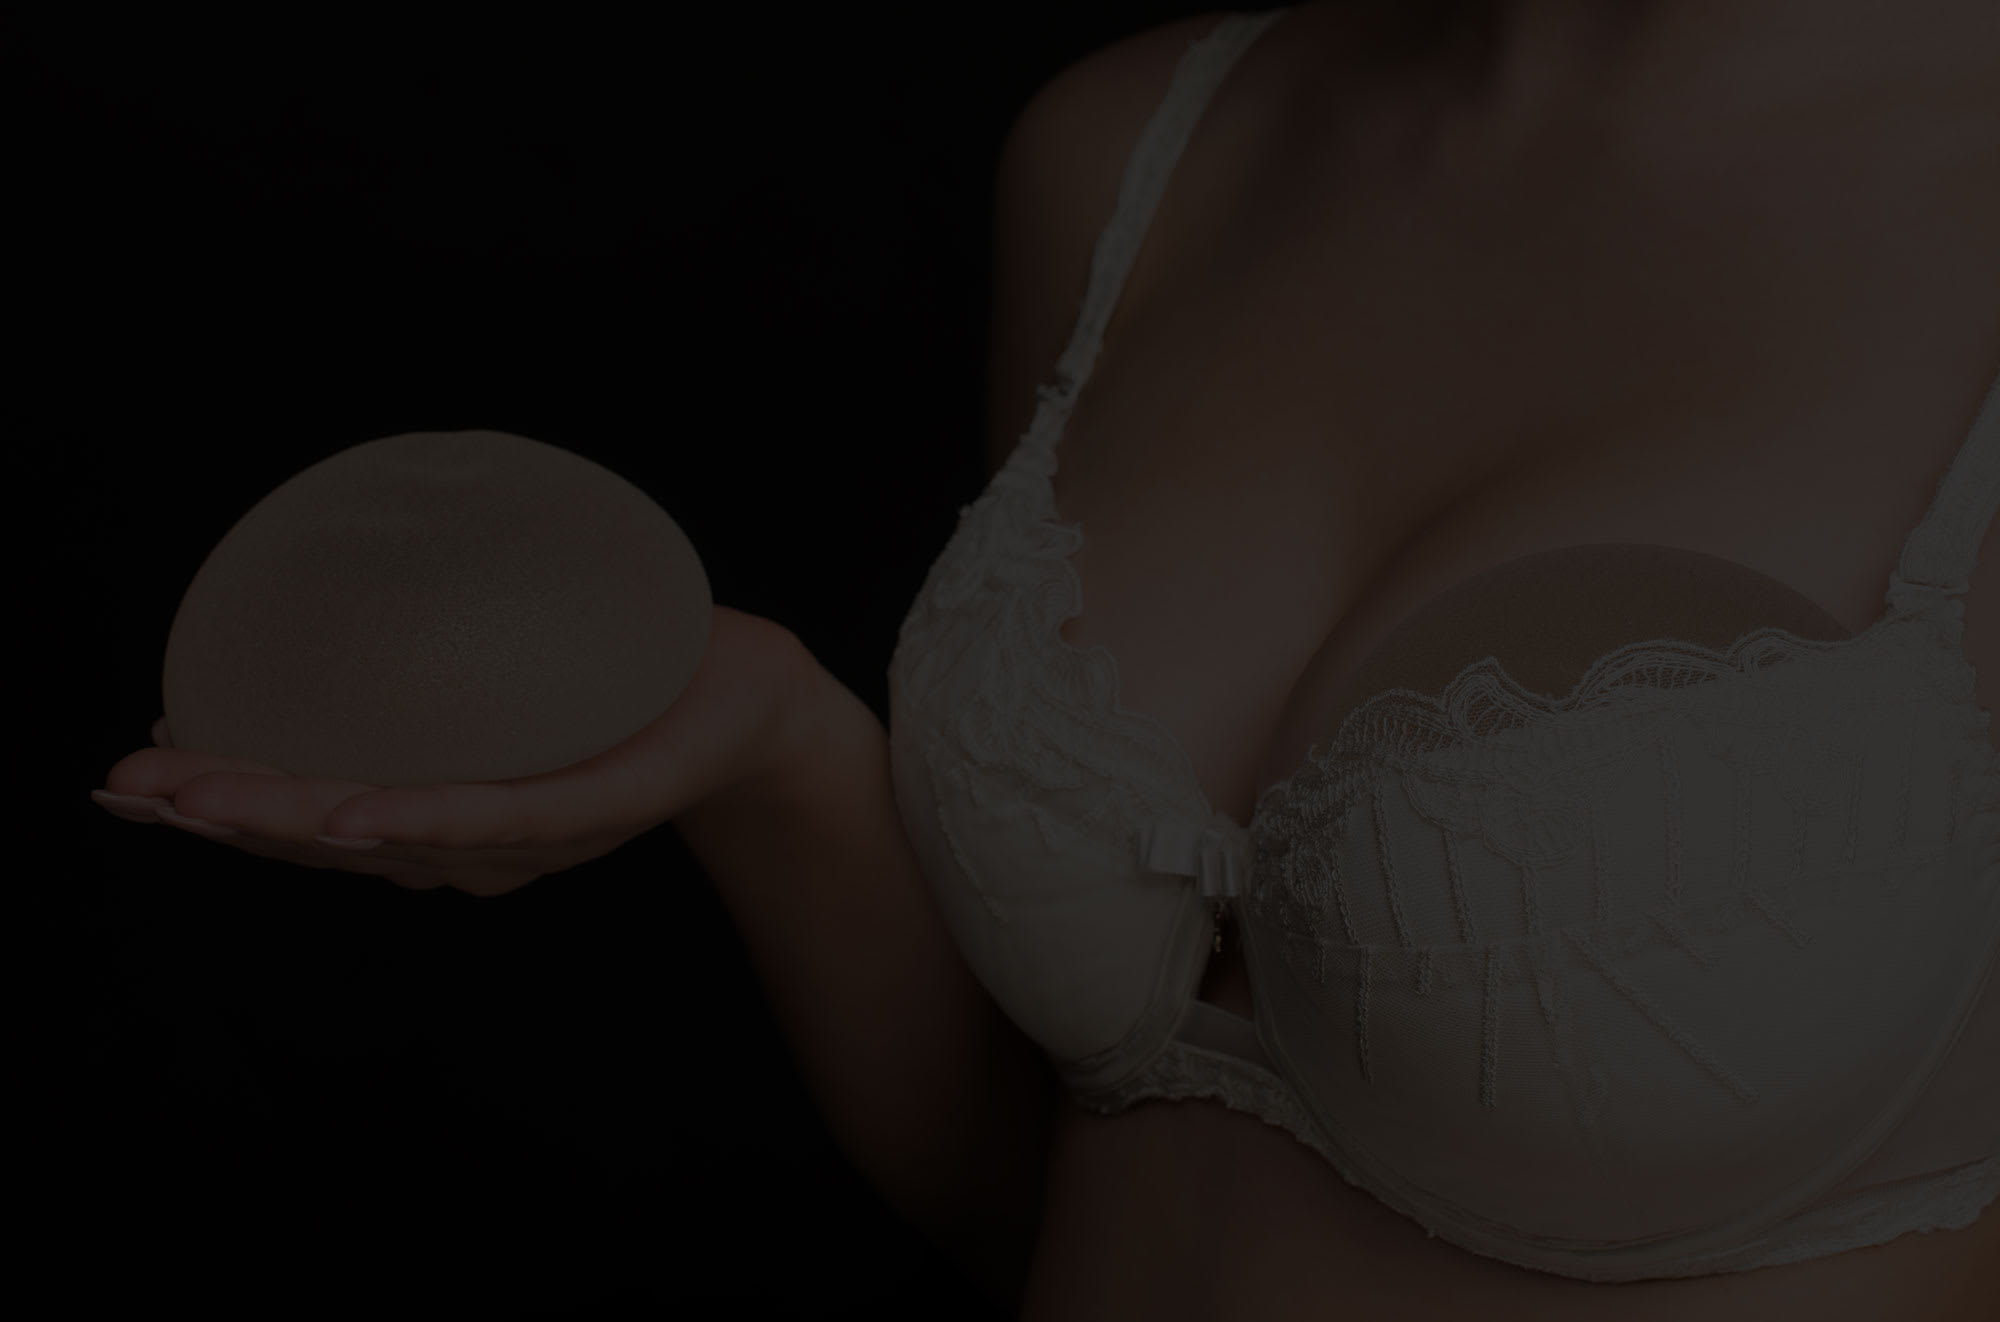 Beautiful woman with large breasts after breast augmentation.